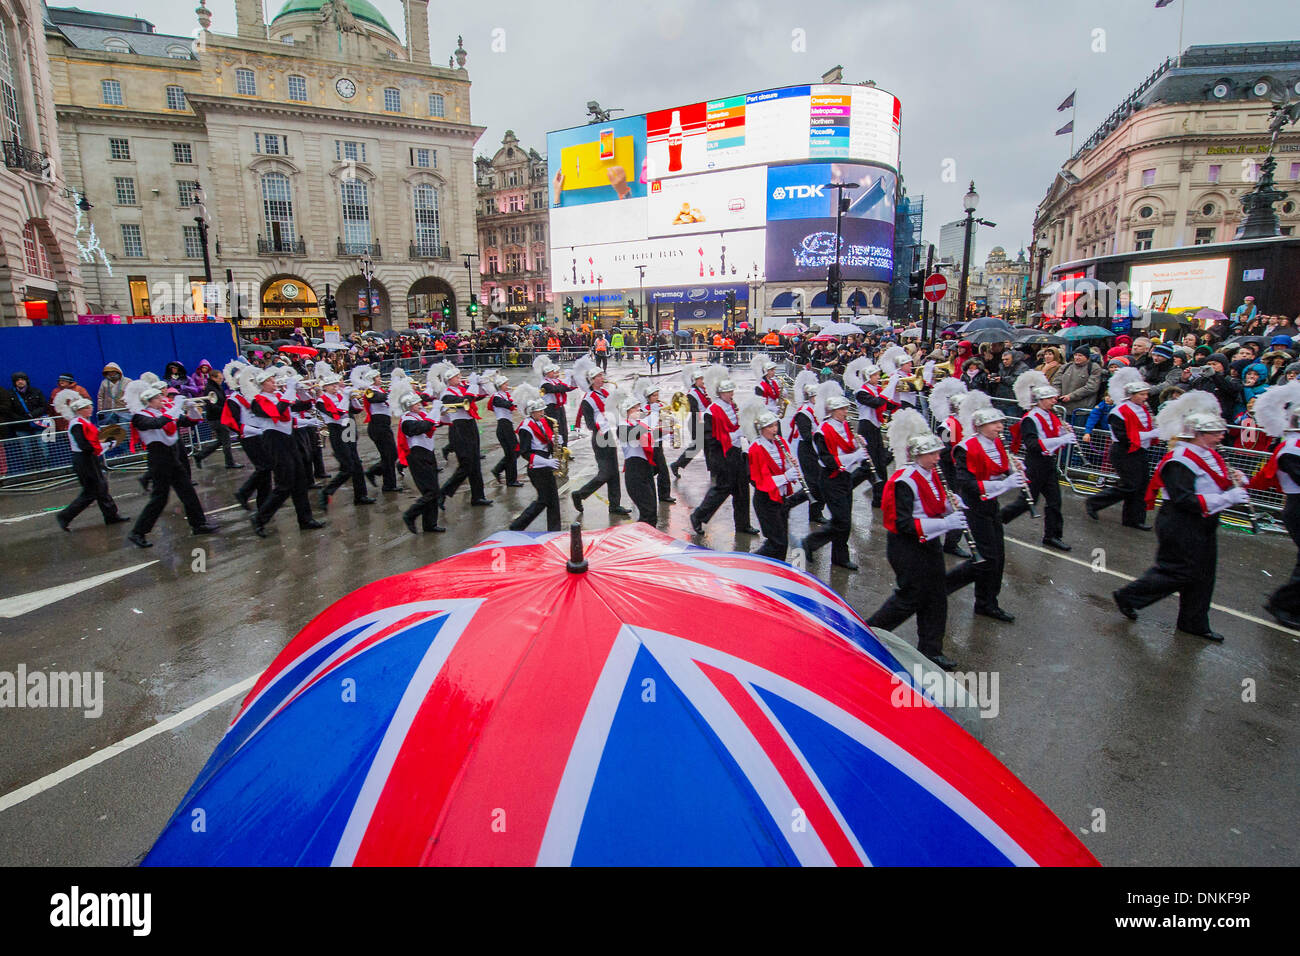 London, UK. 01st Jan, 2014. A new year's day parade passes through Piccadilly Circus on a wet and windy day. London, Stock Photo